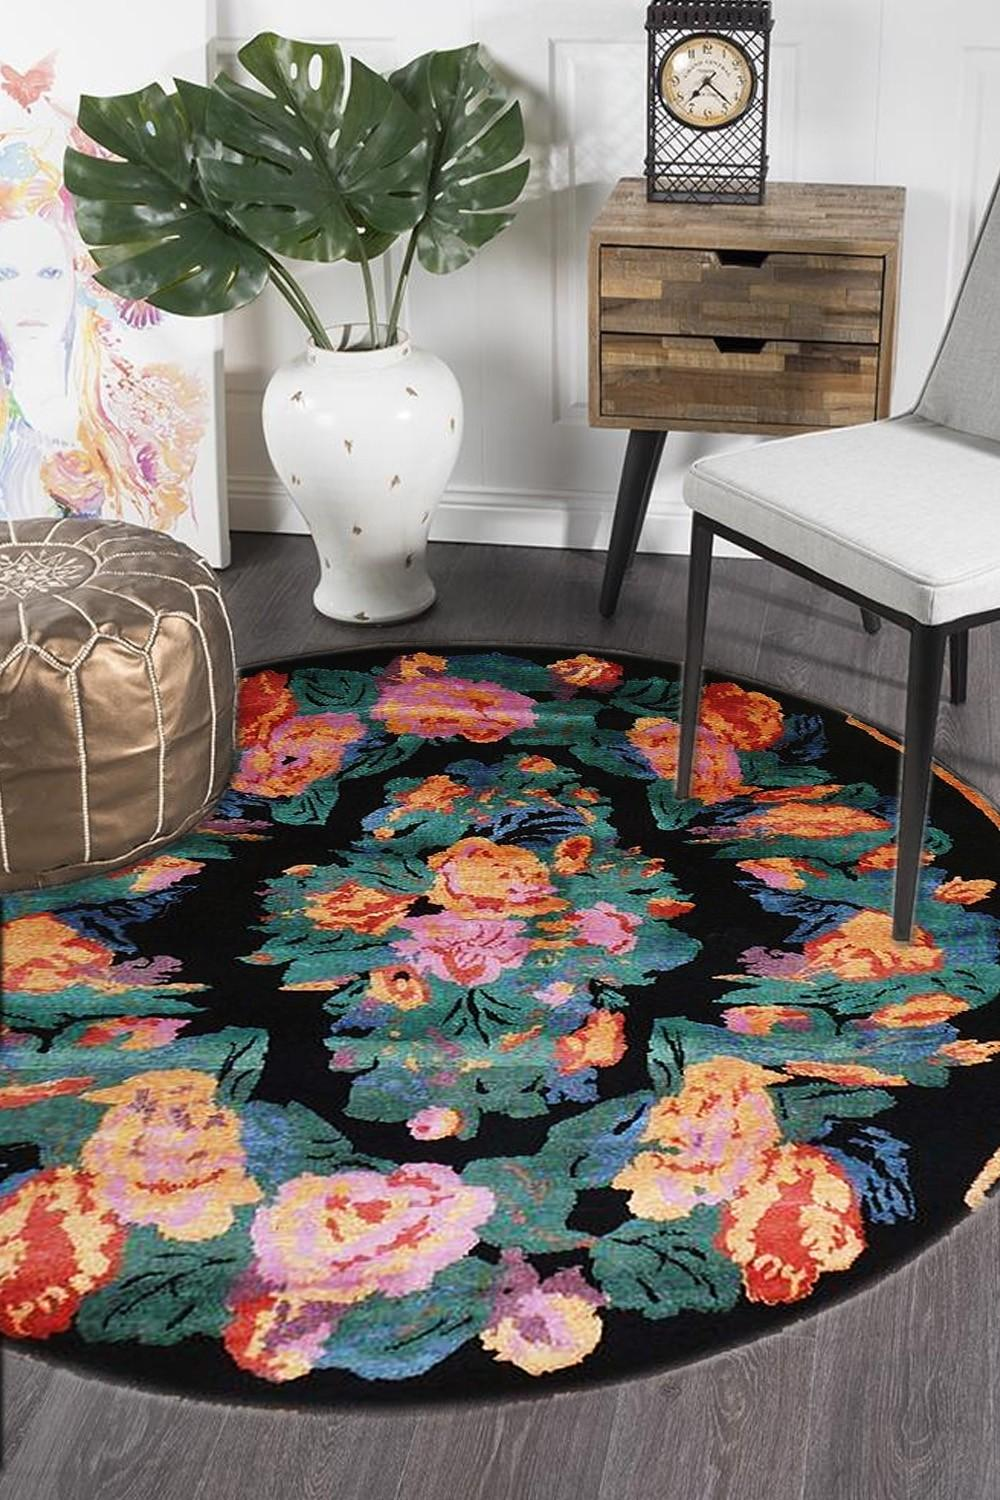 Best Collection Of Handmade Rugs by Rugs and Beyond